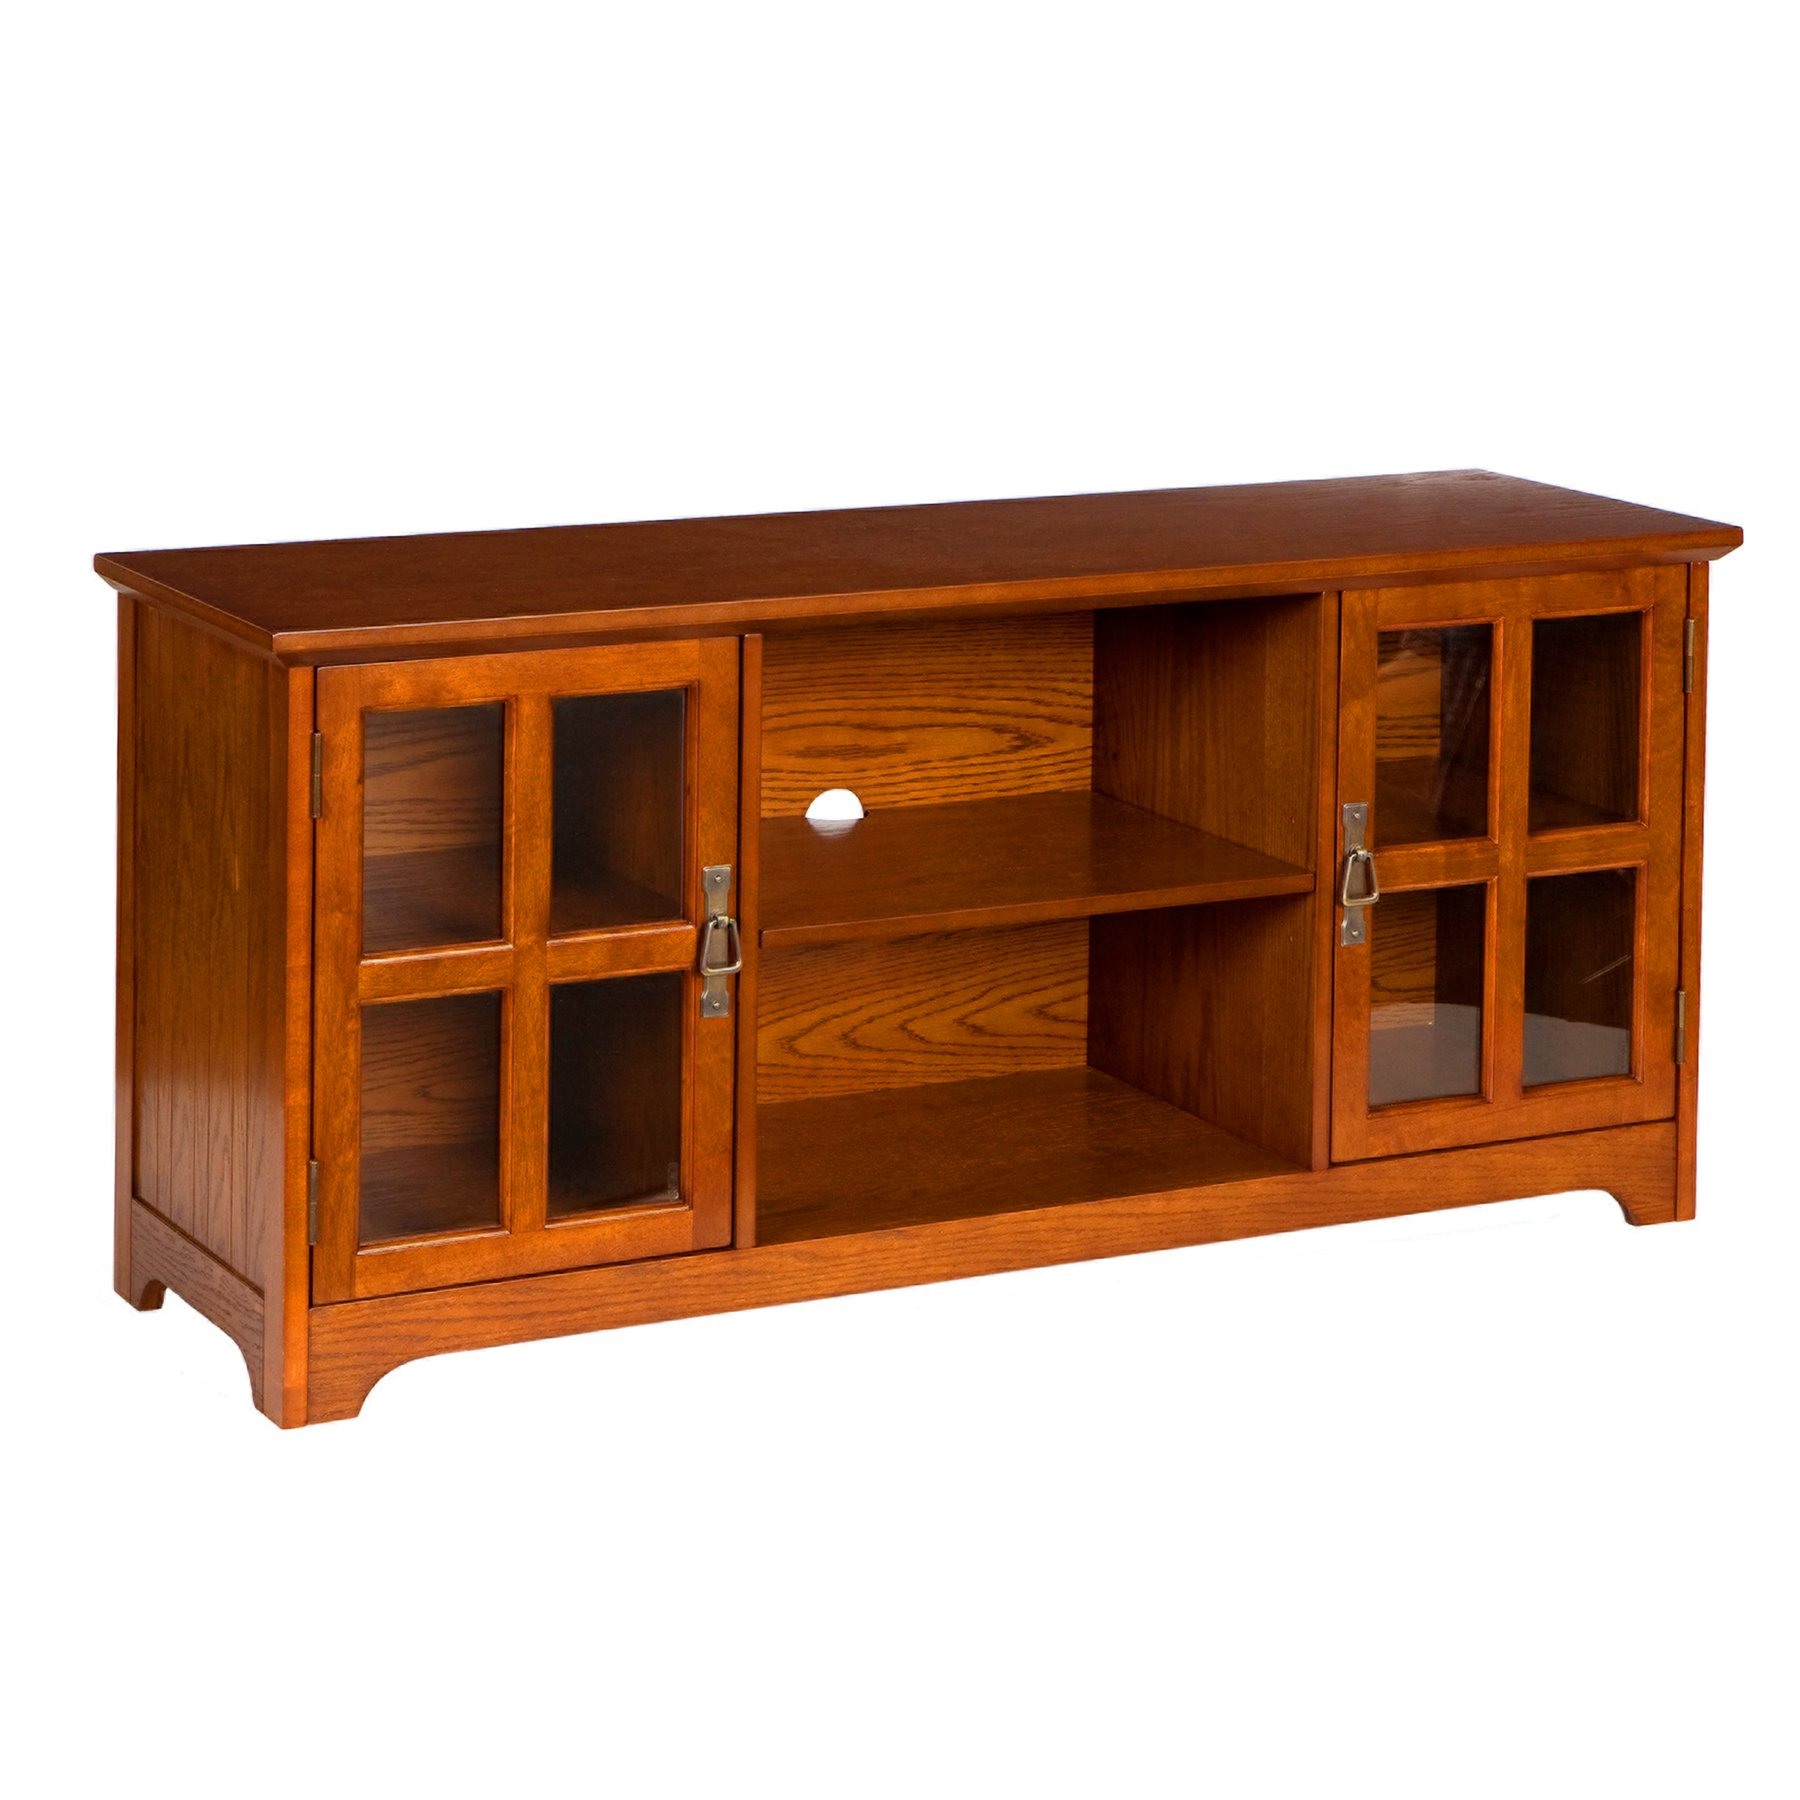 Remington Media Stand - Mission Oak by Southern Enterprises